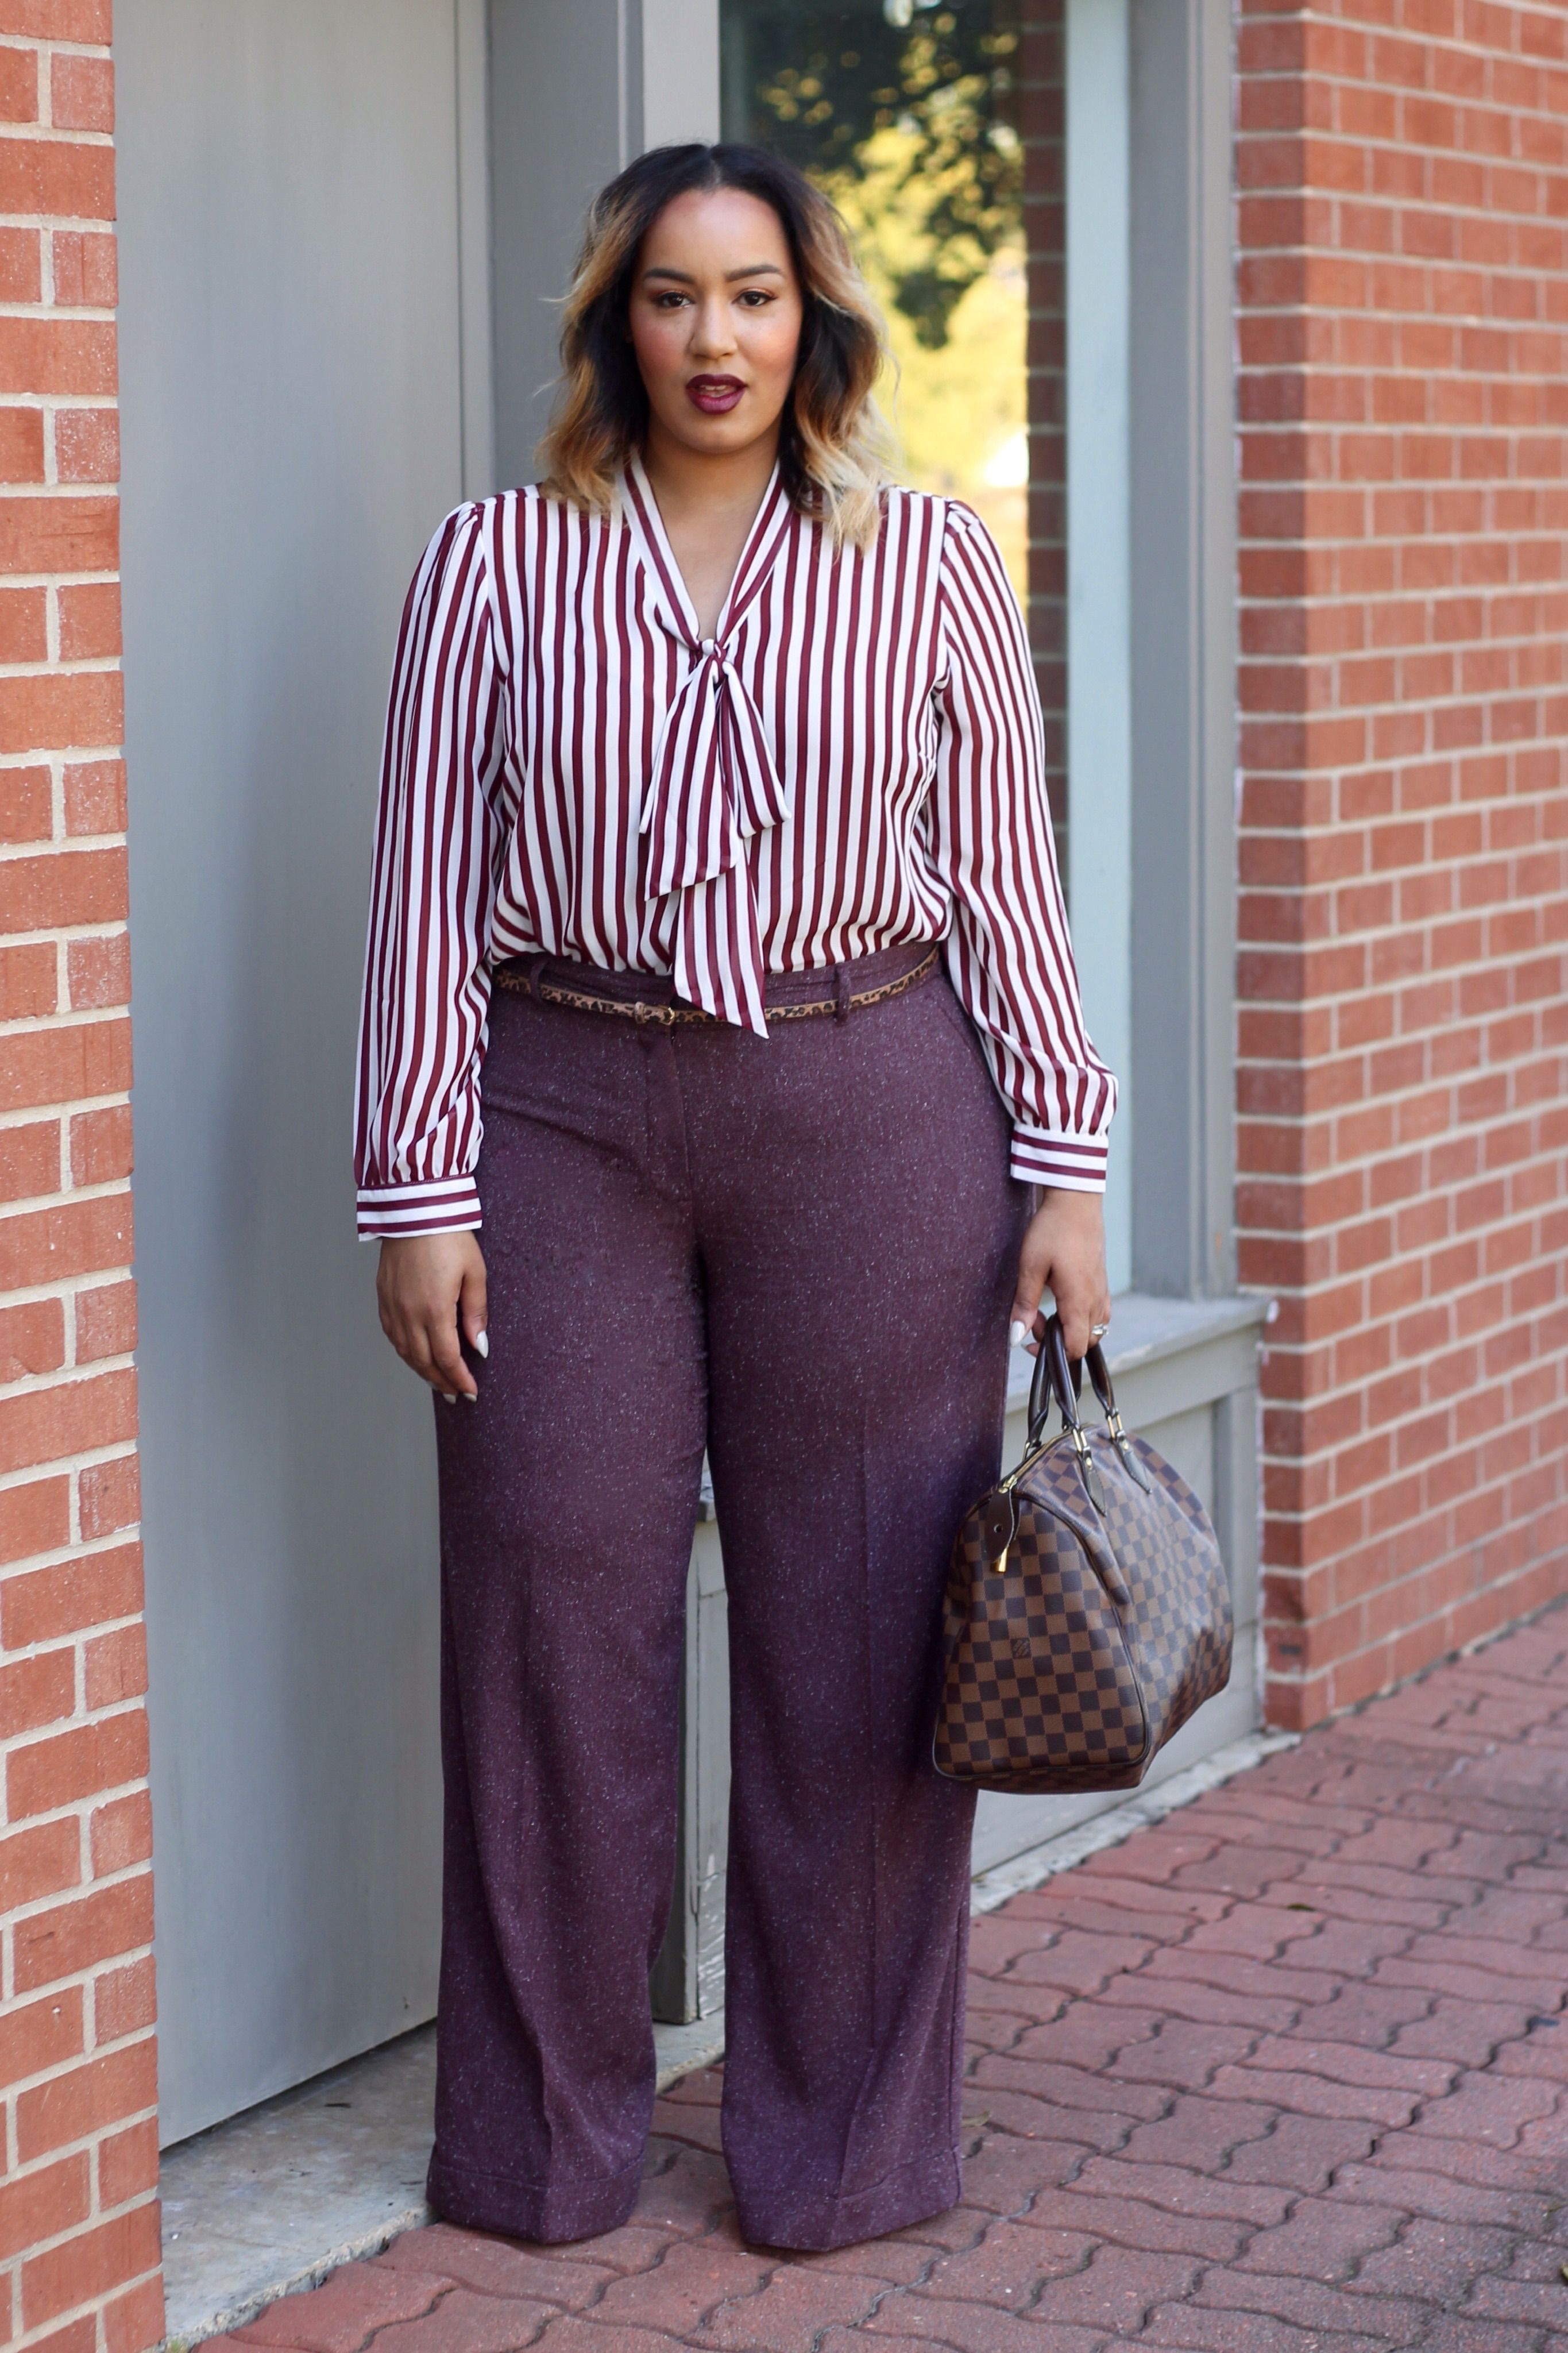 plus size fashion for women - plus size work outfit | fashion for